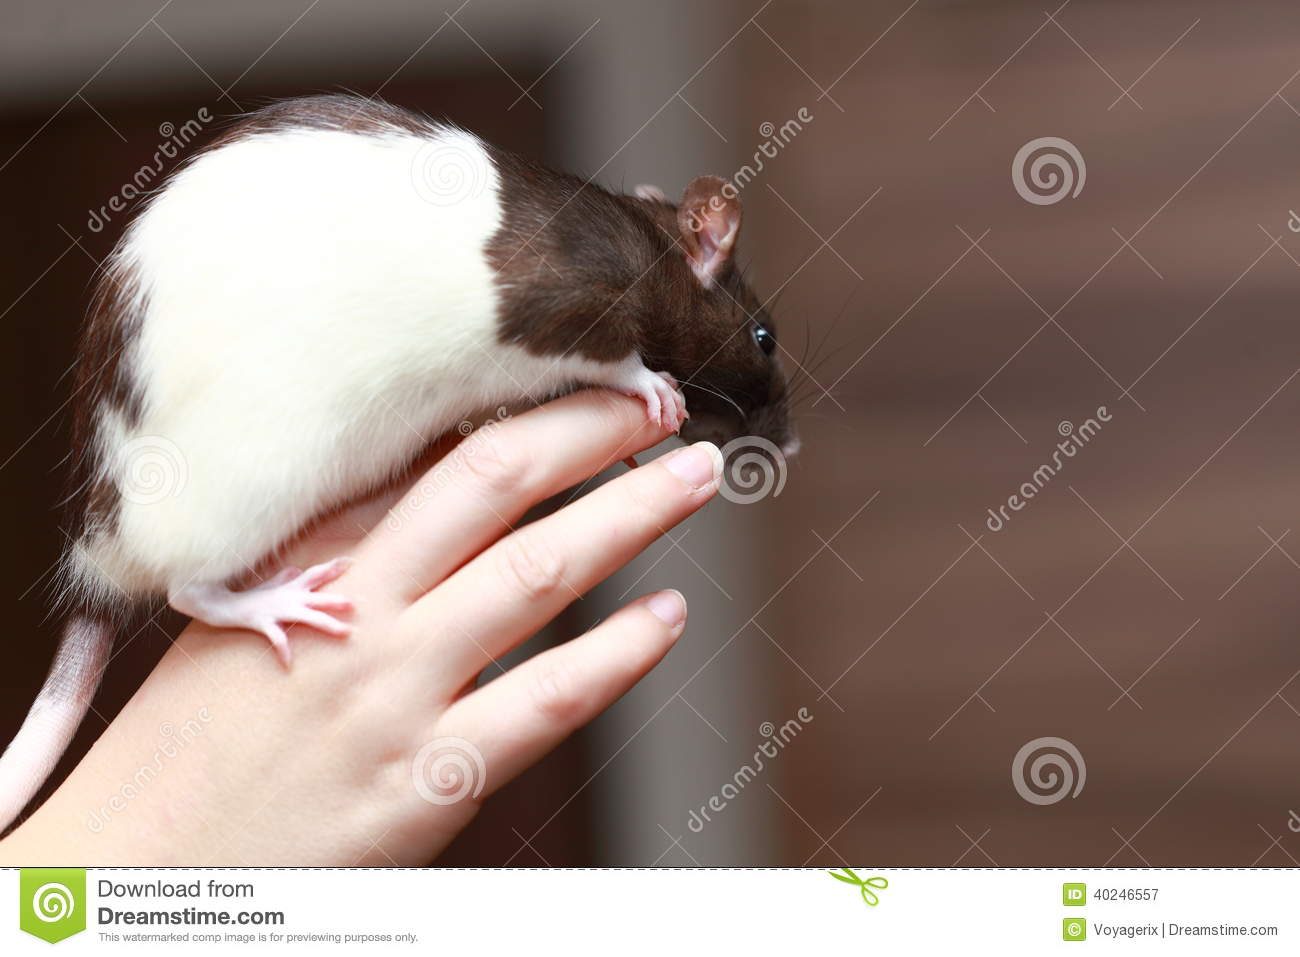 rat brun d 39 animal familier amical dans la main humaine animaux la maison photo stock image. Black Bedroom Furniture Sets. Home Design Ideas